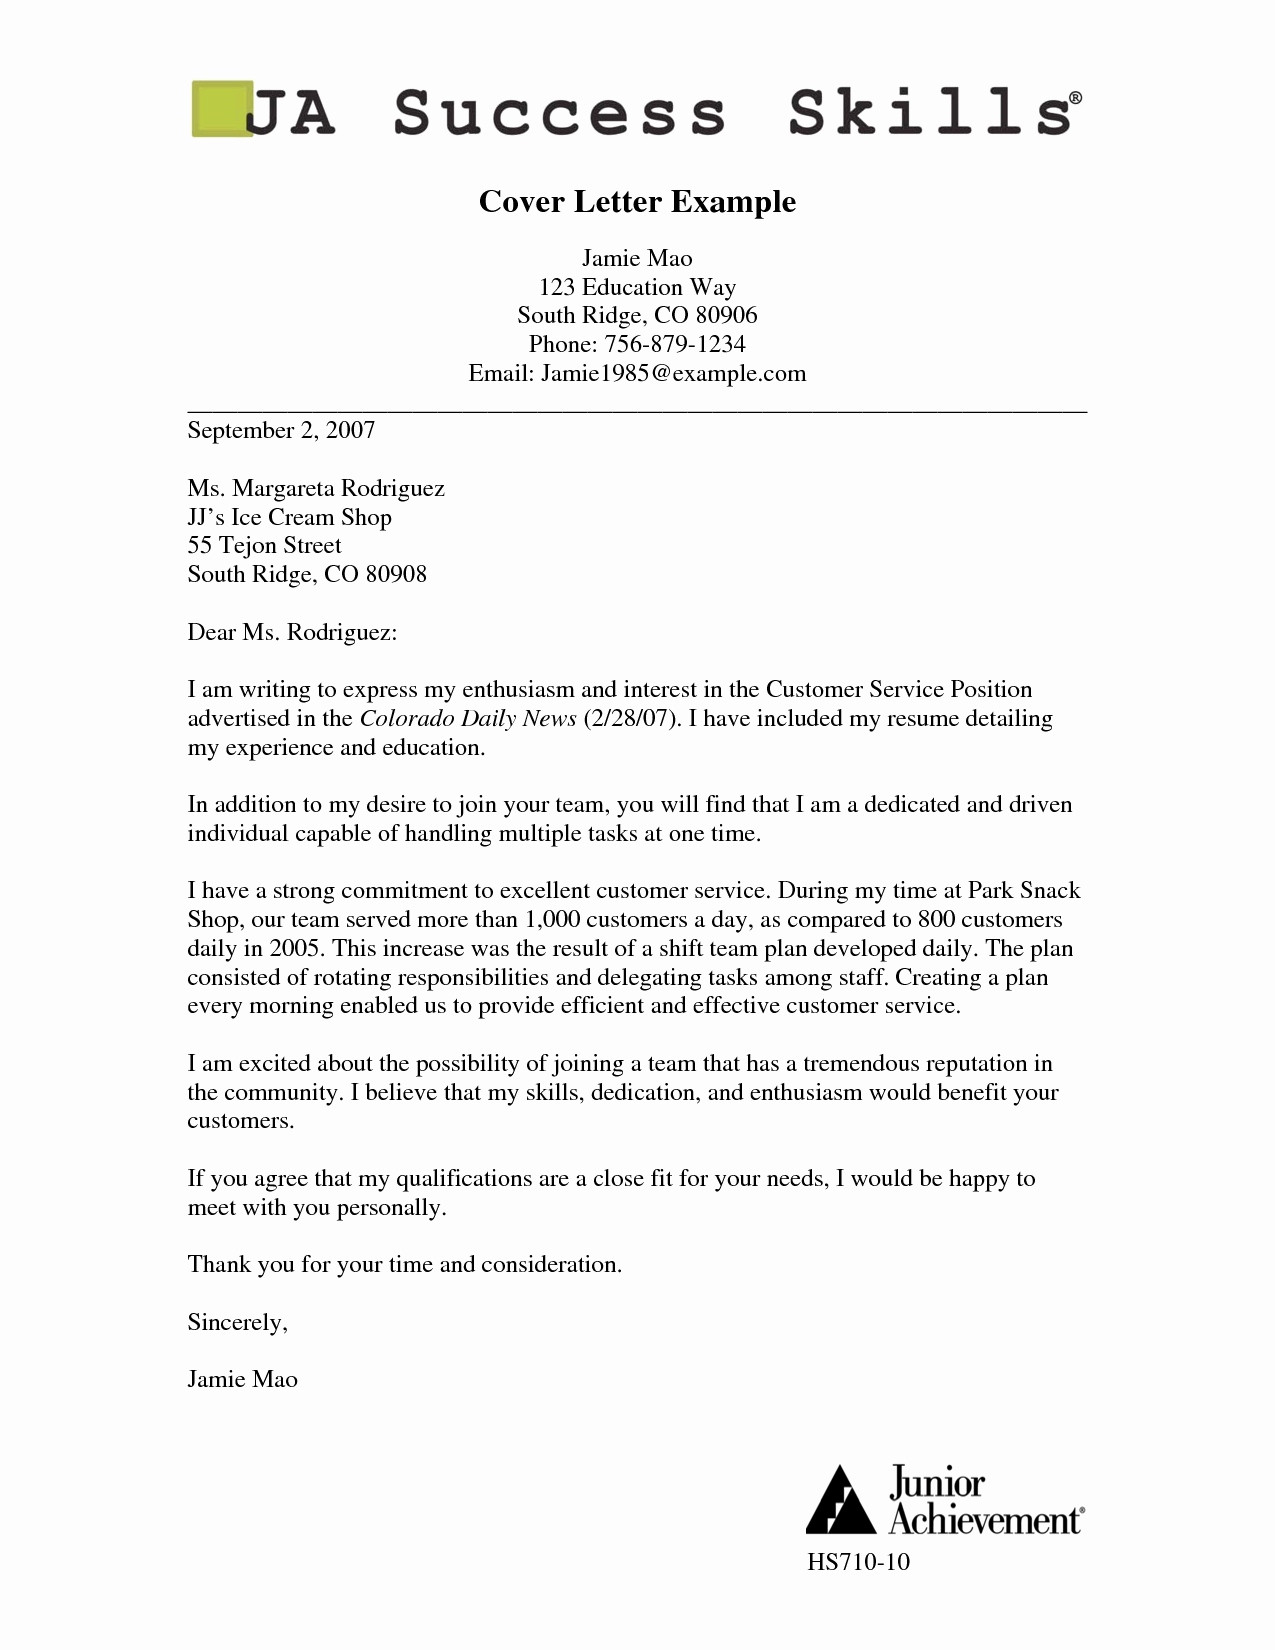 Commitment Letter Template - Mitment Letter Sample Beautiful Unusual Cover Letters 15 Samples